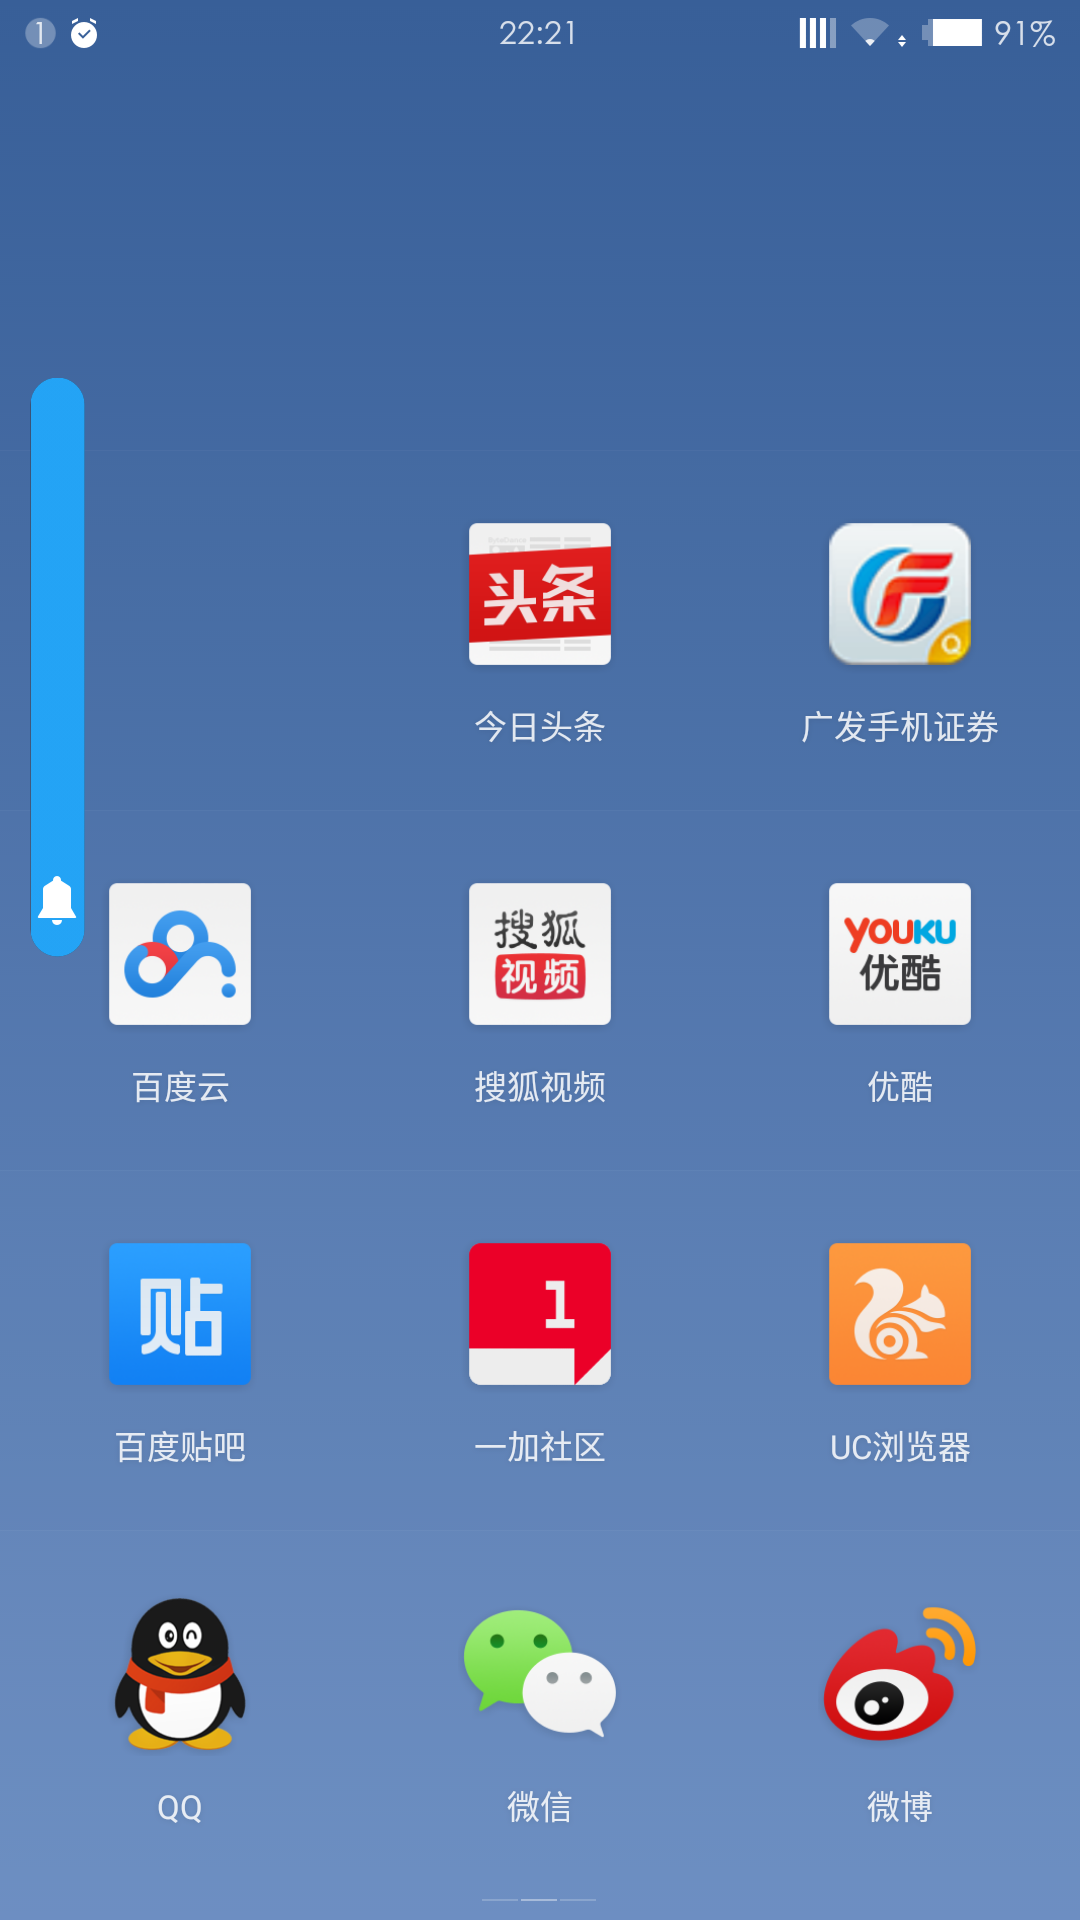 Screenshot_2015-08-18-22-21-30.png